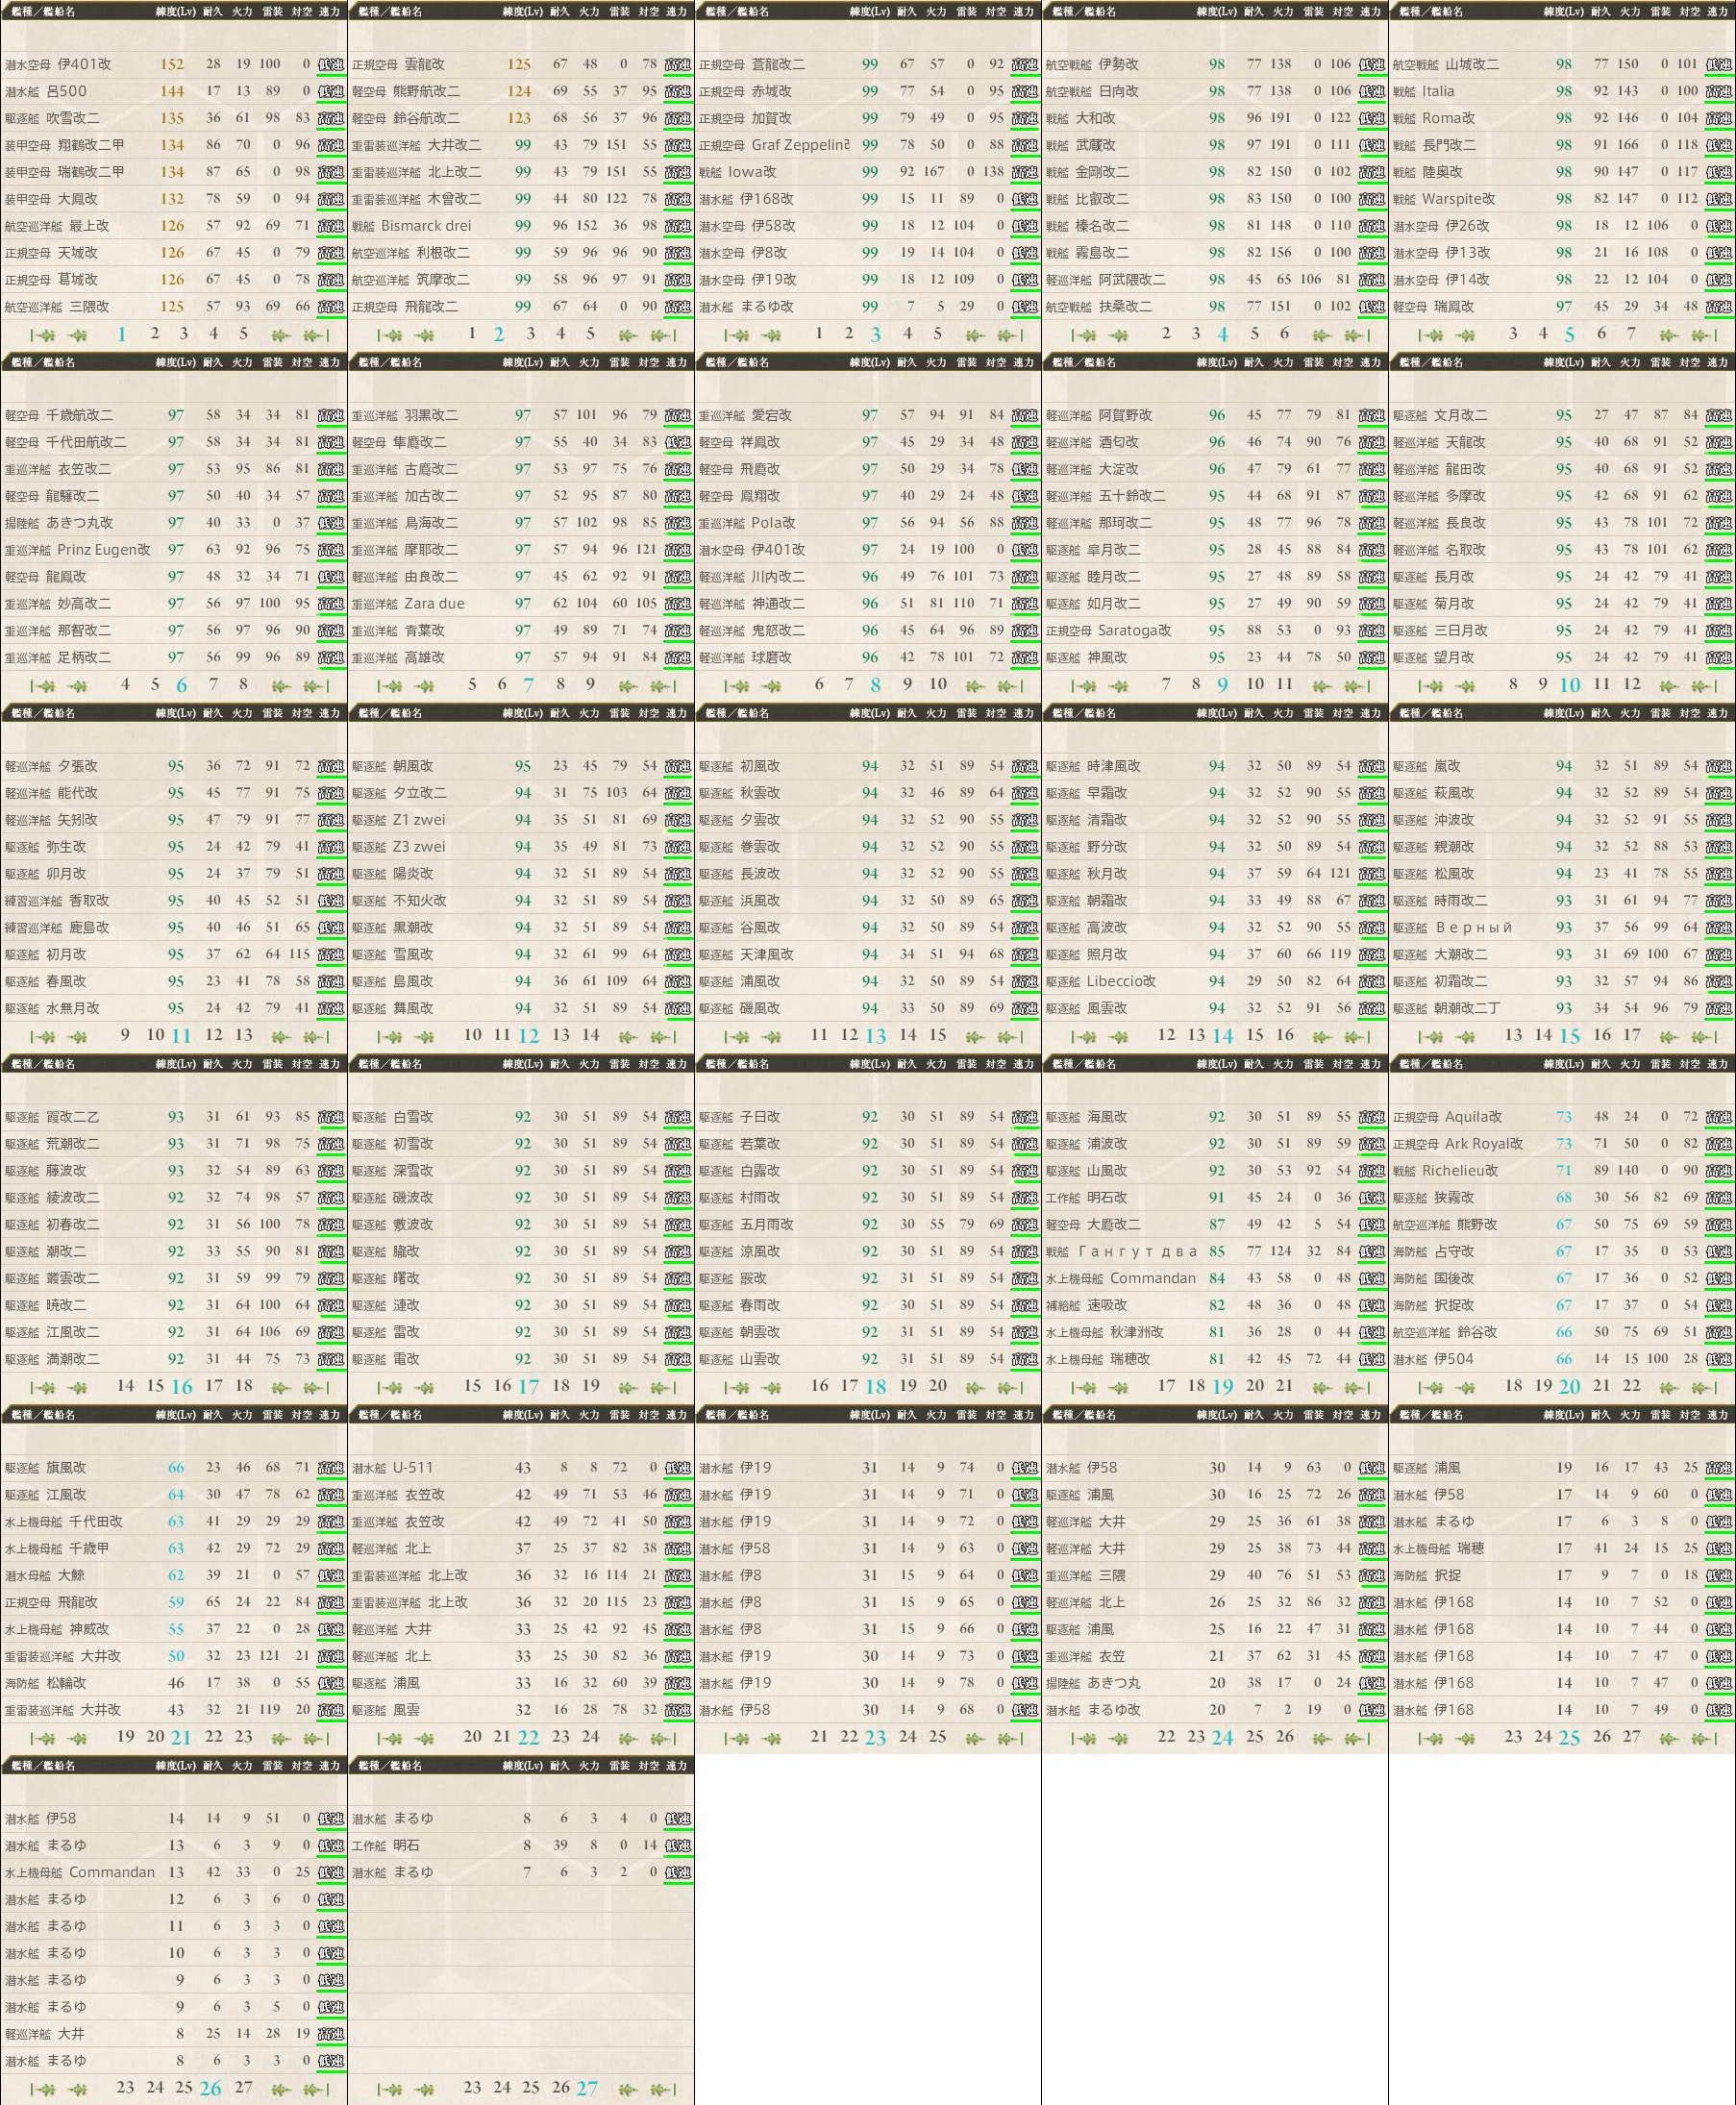 data.kancolle.levelsort.20171126.png